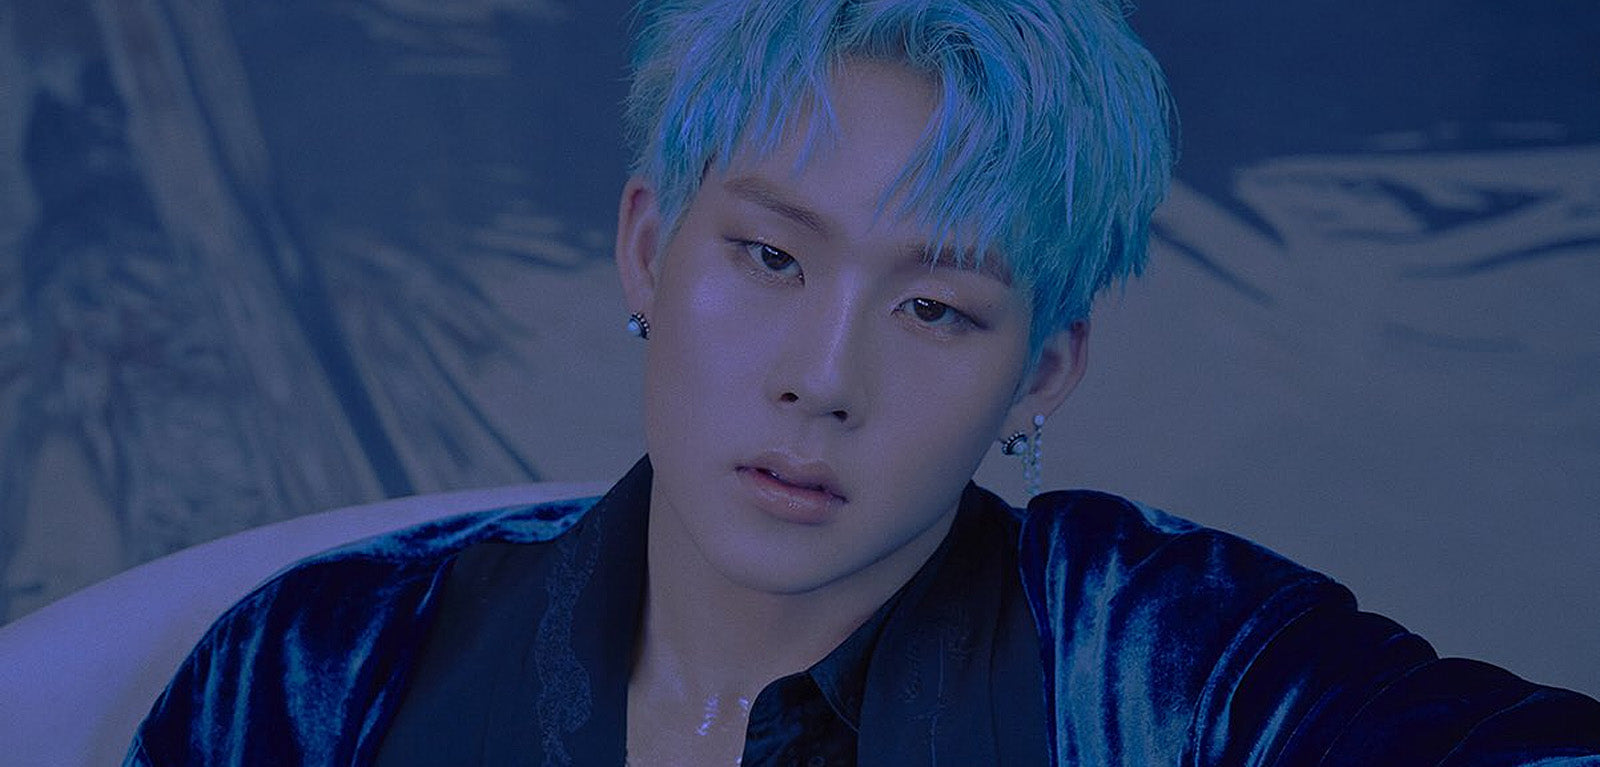 Joohoney (MONSTA X) suspends his career because of his anxiety - Kpopshop